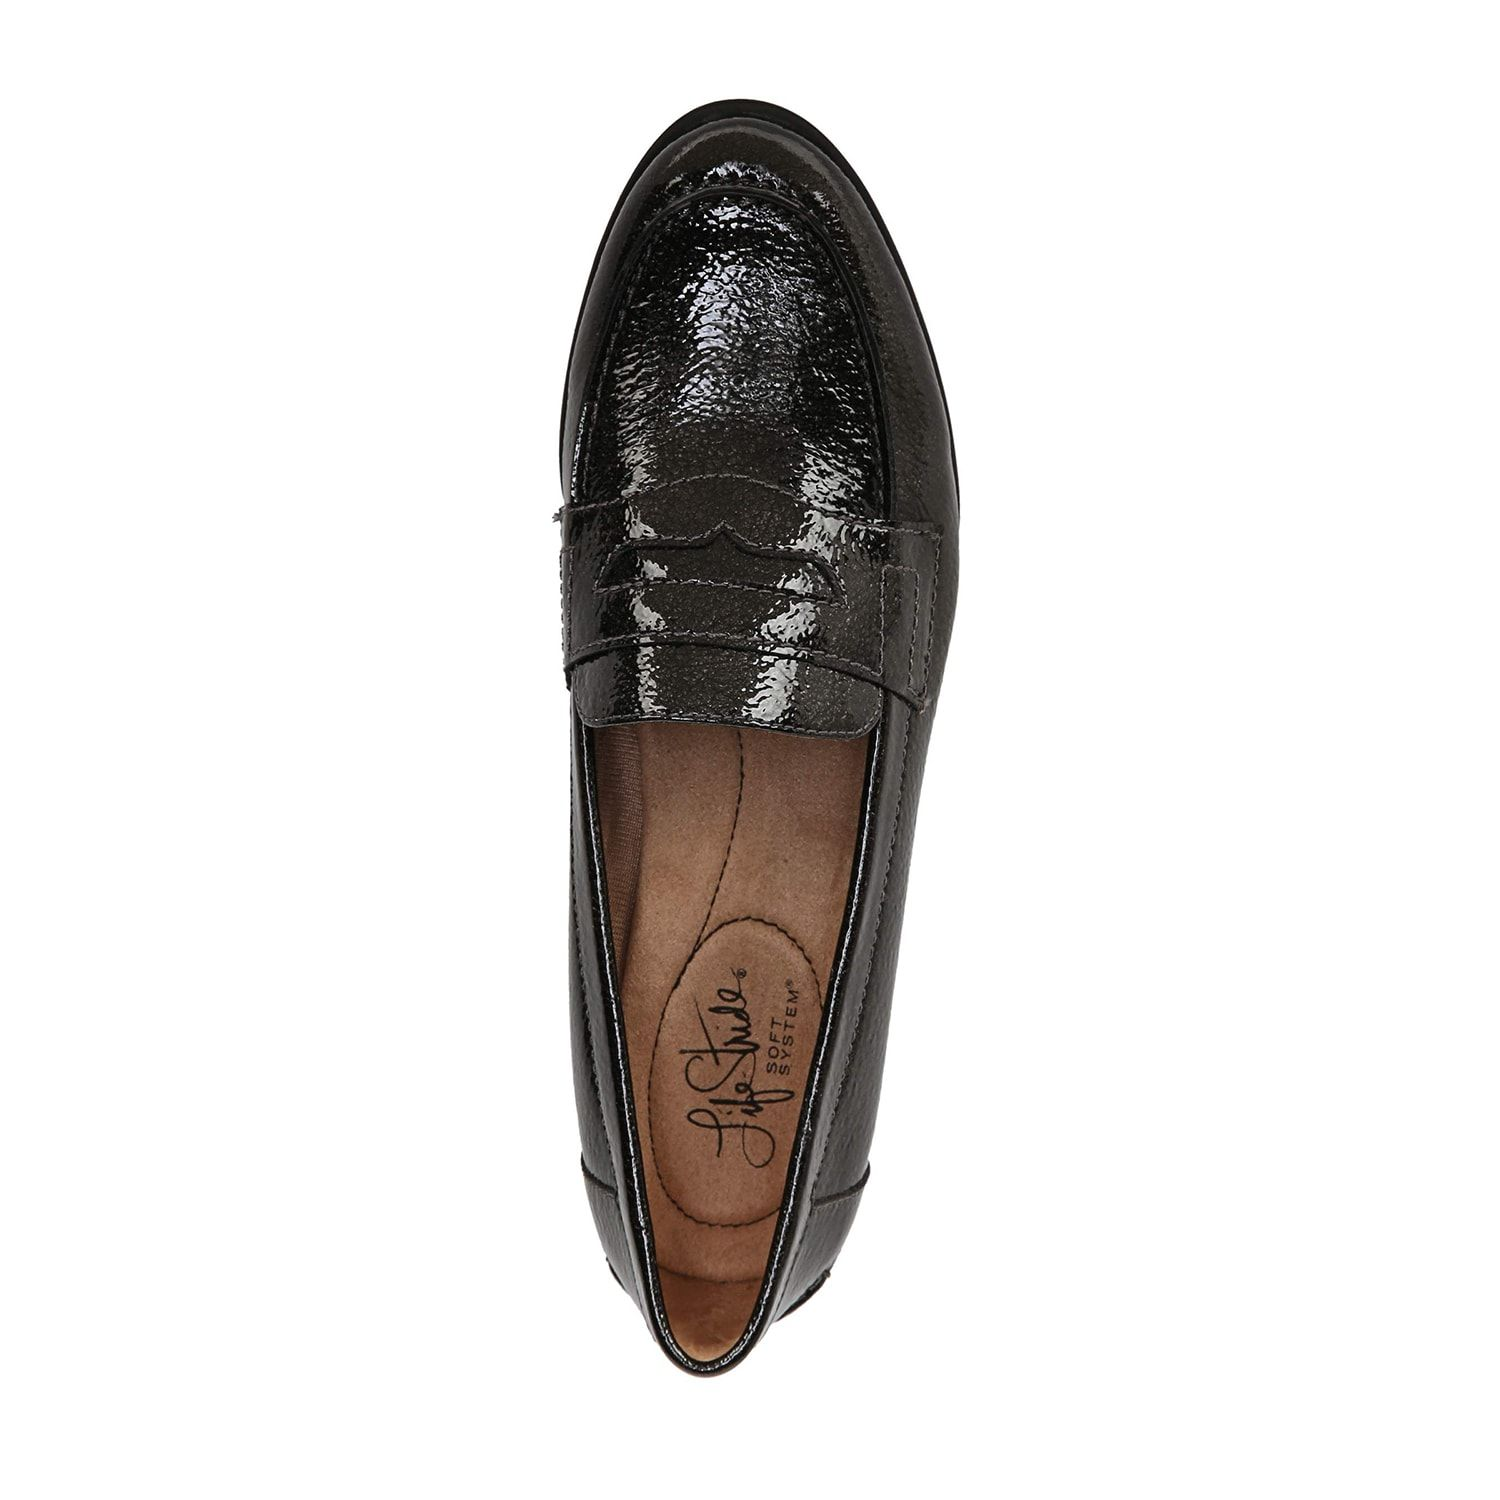 4dba9357a15 LifeStride Madison Women s Penny Loafers  Madison